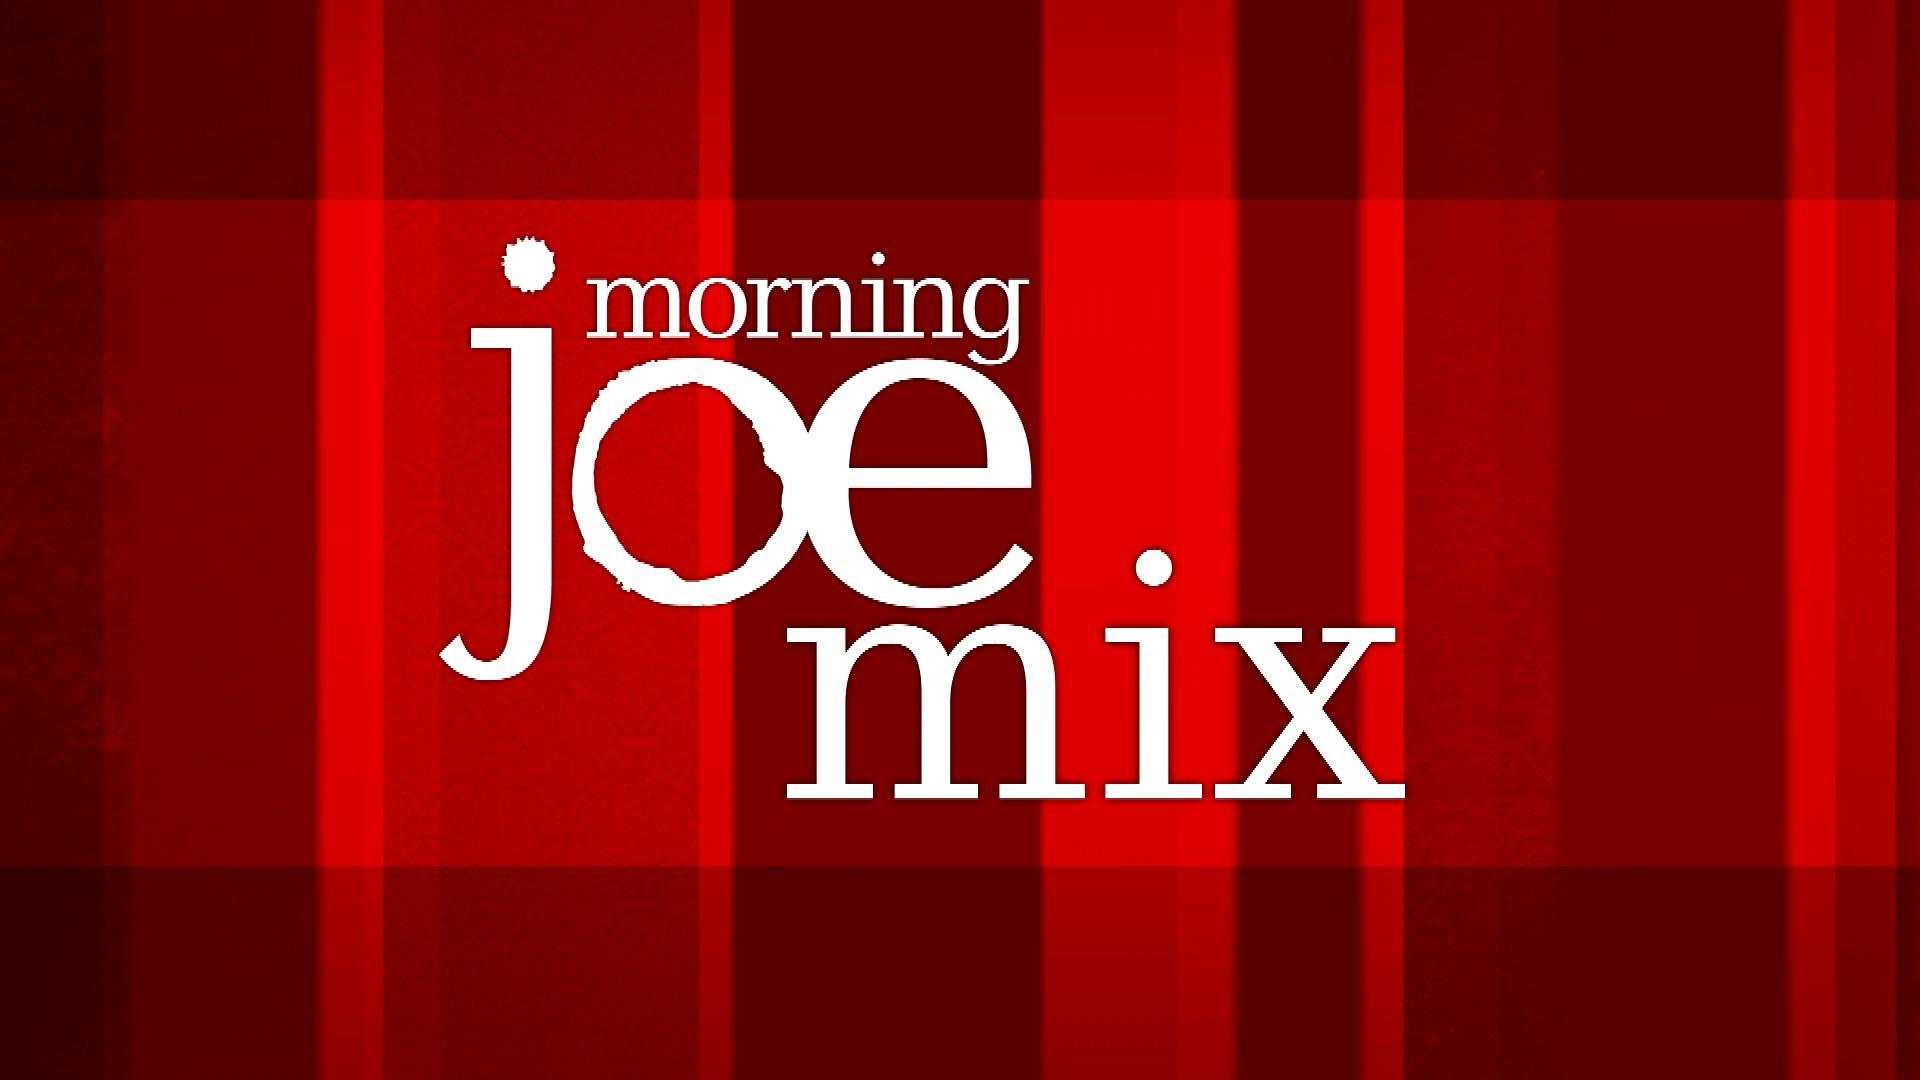 Morning Joe Mix: Tuesday, March 15